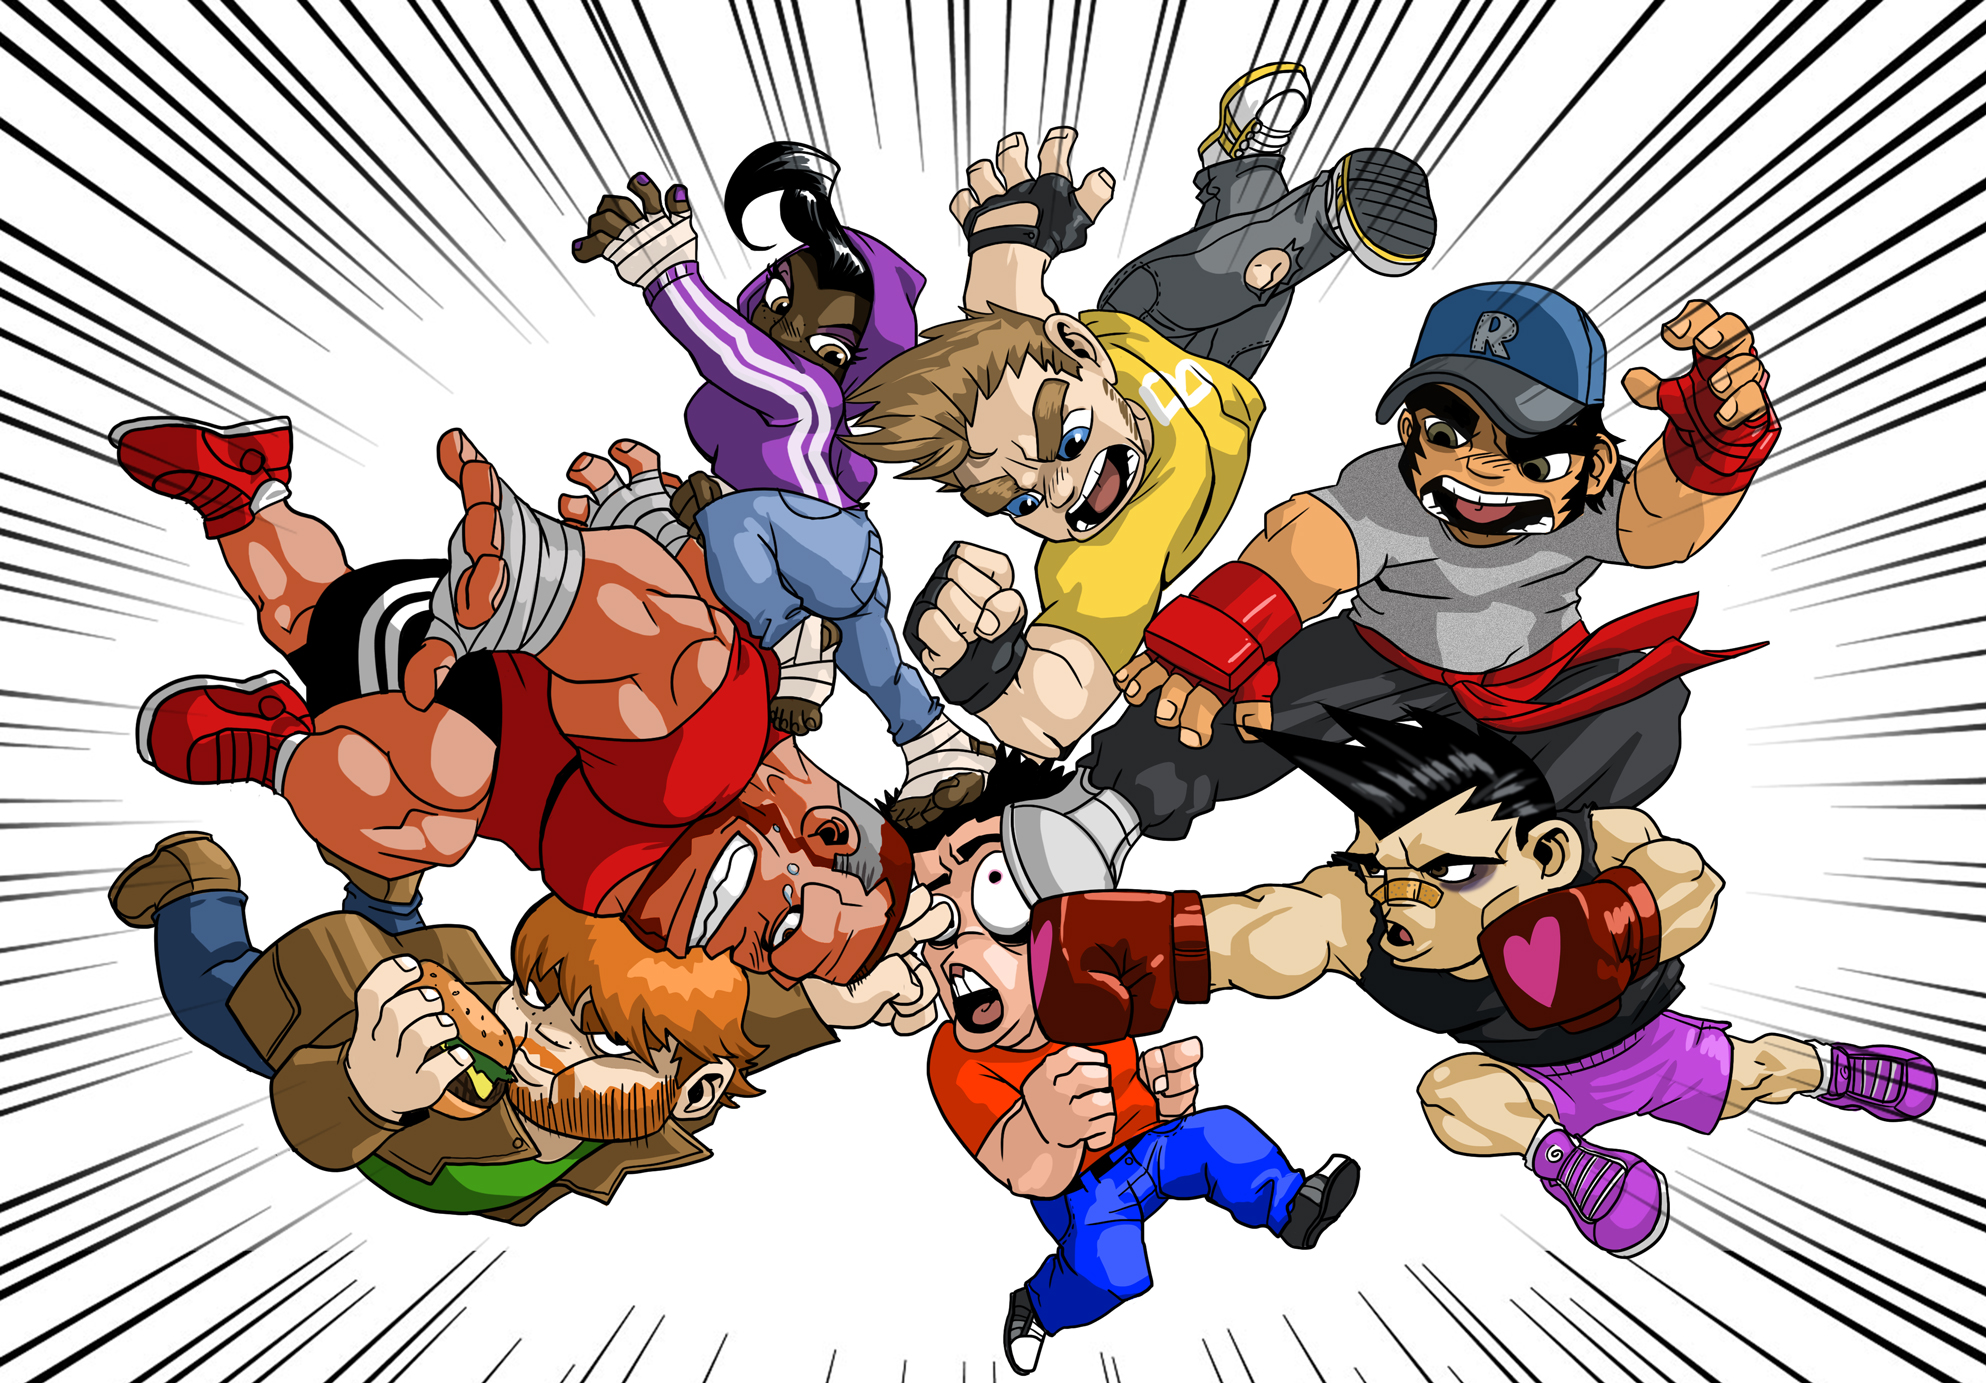 River City Ransom: Underground on Steam Greenlight